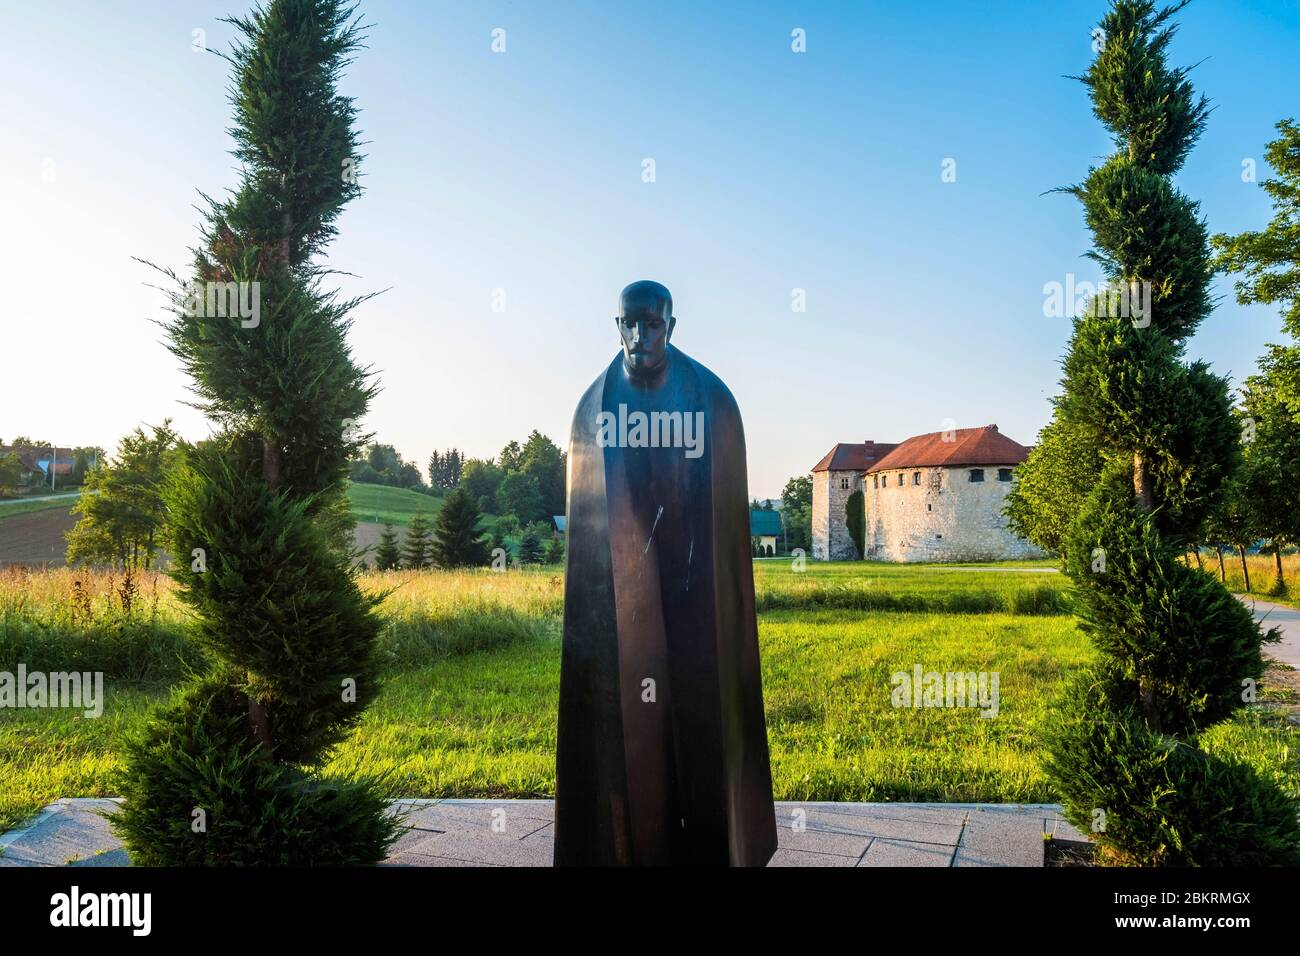 Russian Slav Slavic High Resolution Stock Photography And Images